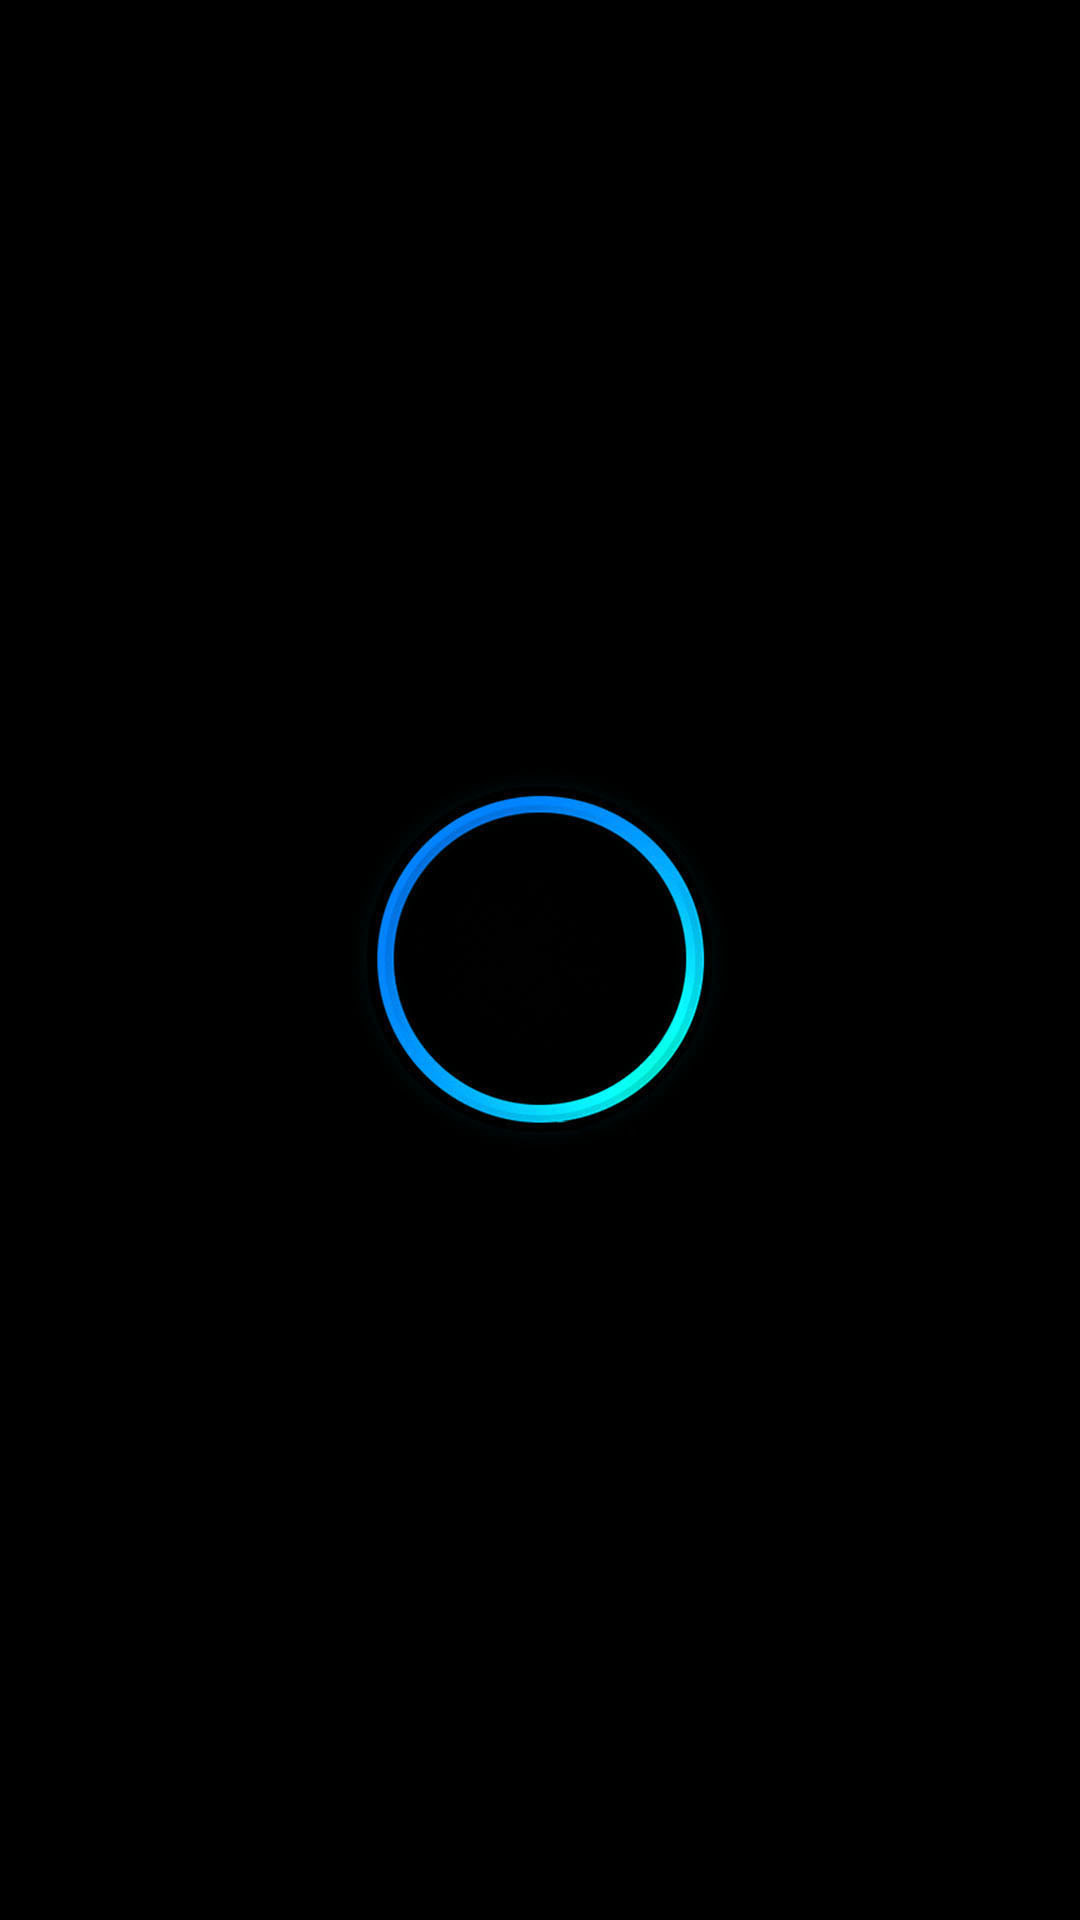 1080x1920 turquoise blue circle minimal android wallpaper